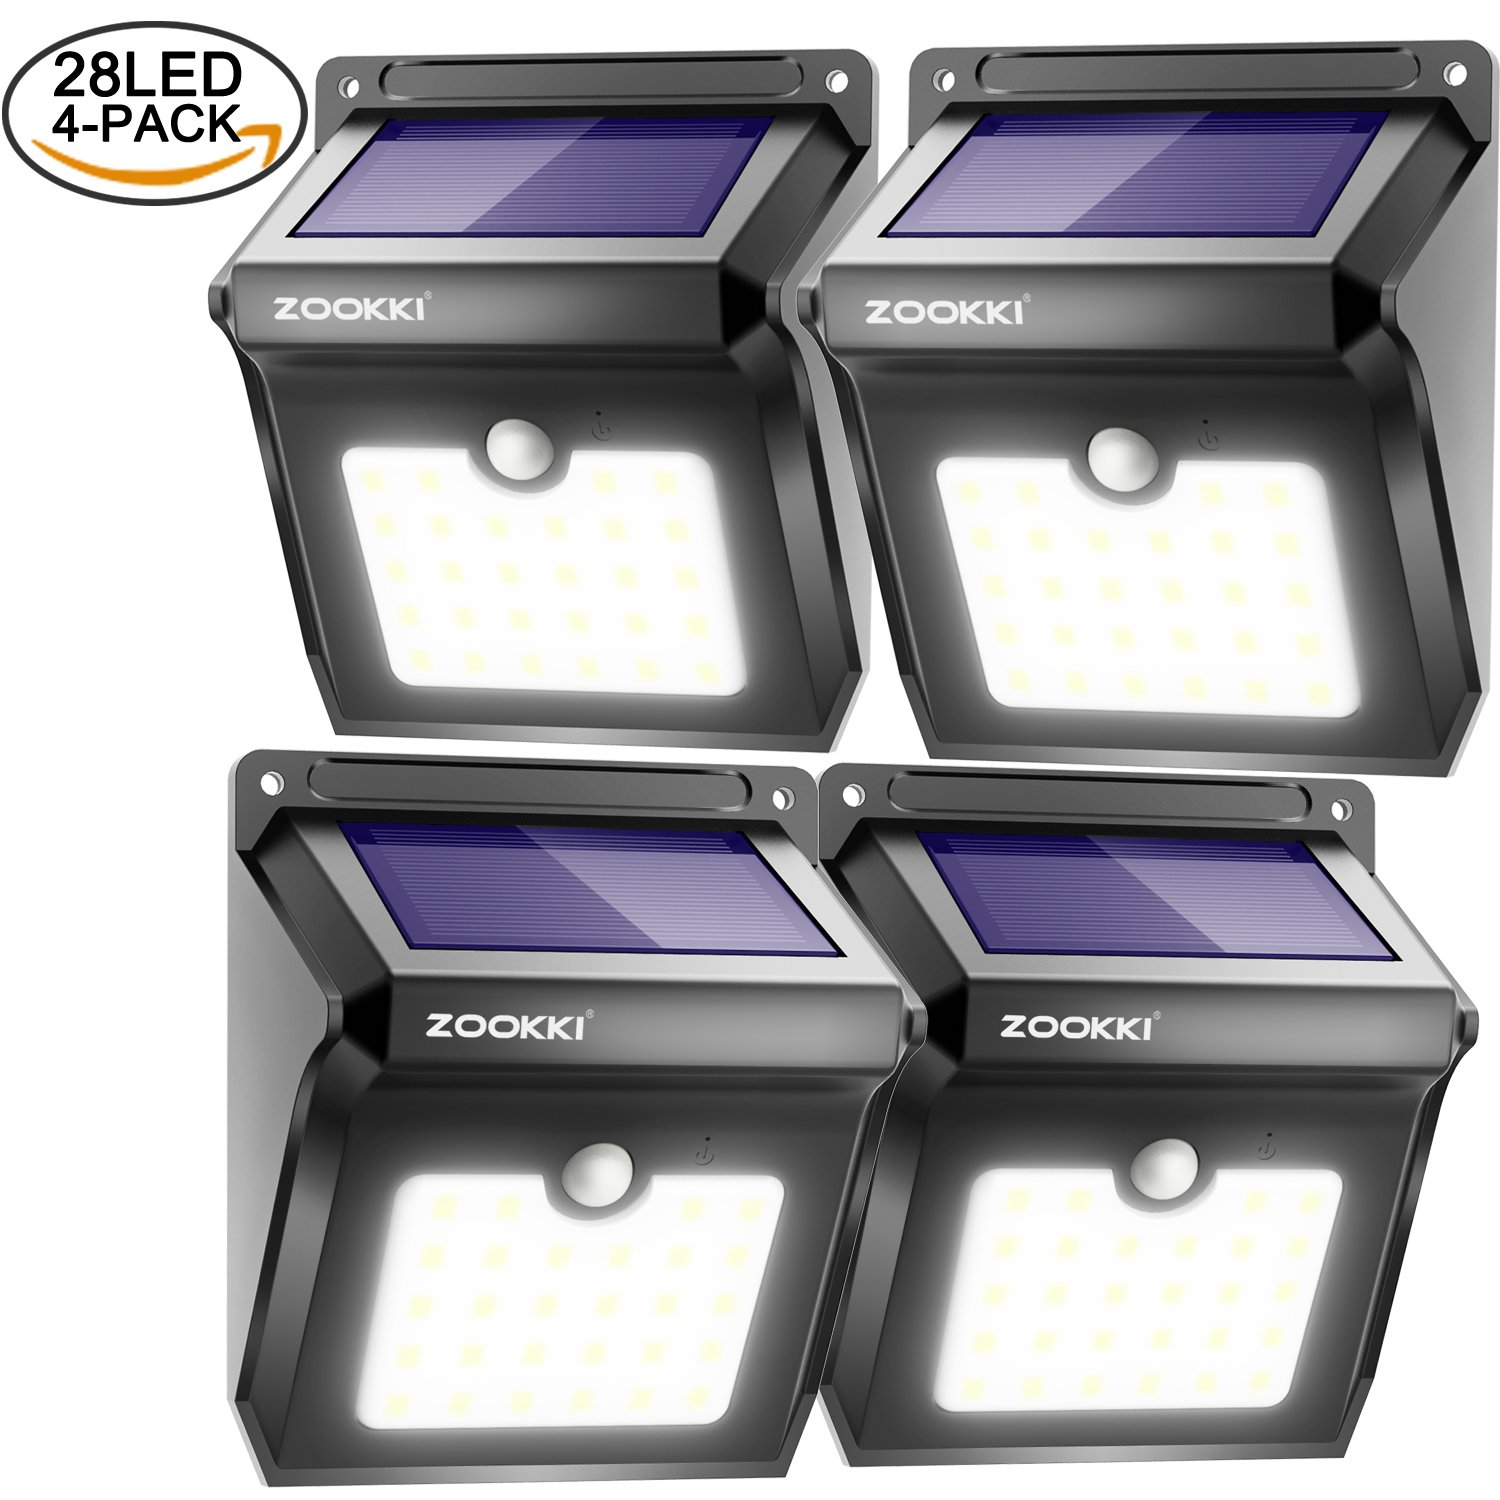 zookki upgraded 28 leds wireless solar motion sensor light waterproof security lights powerful for outdoors